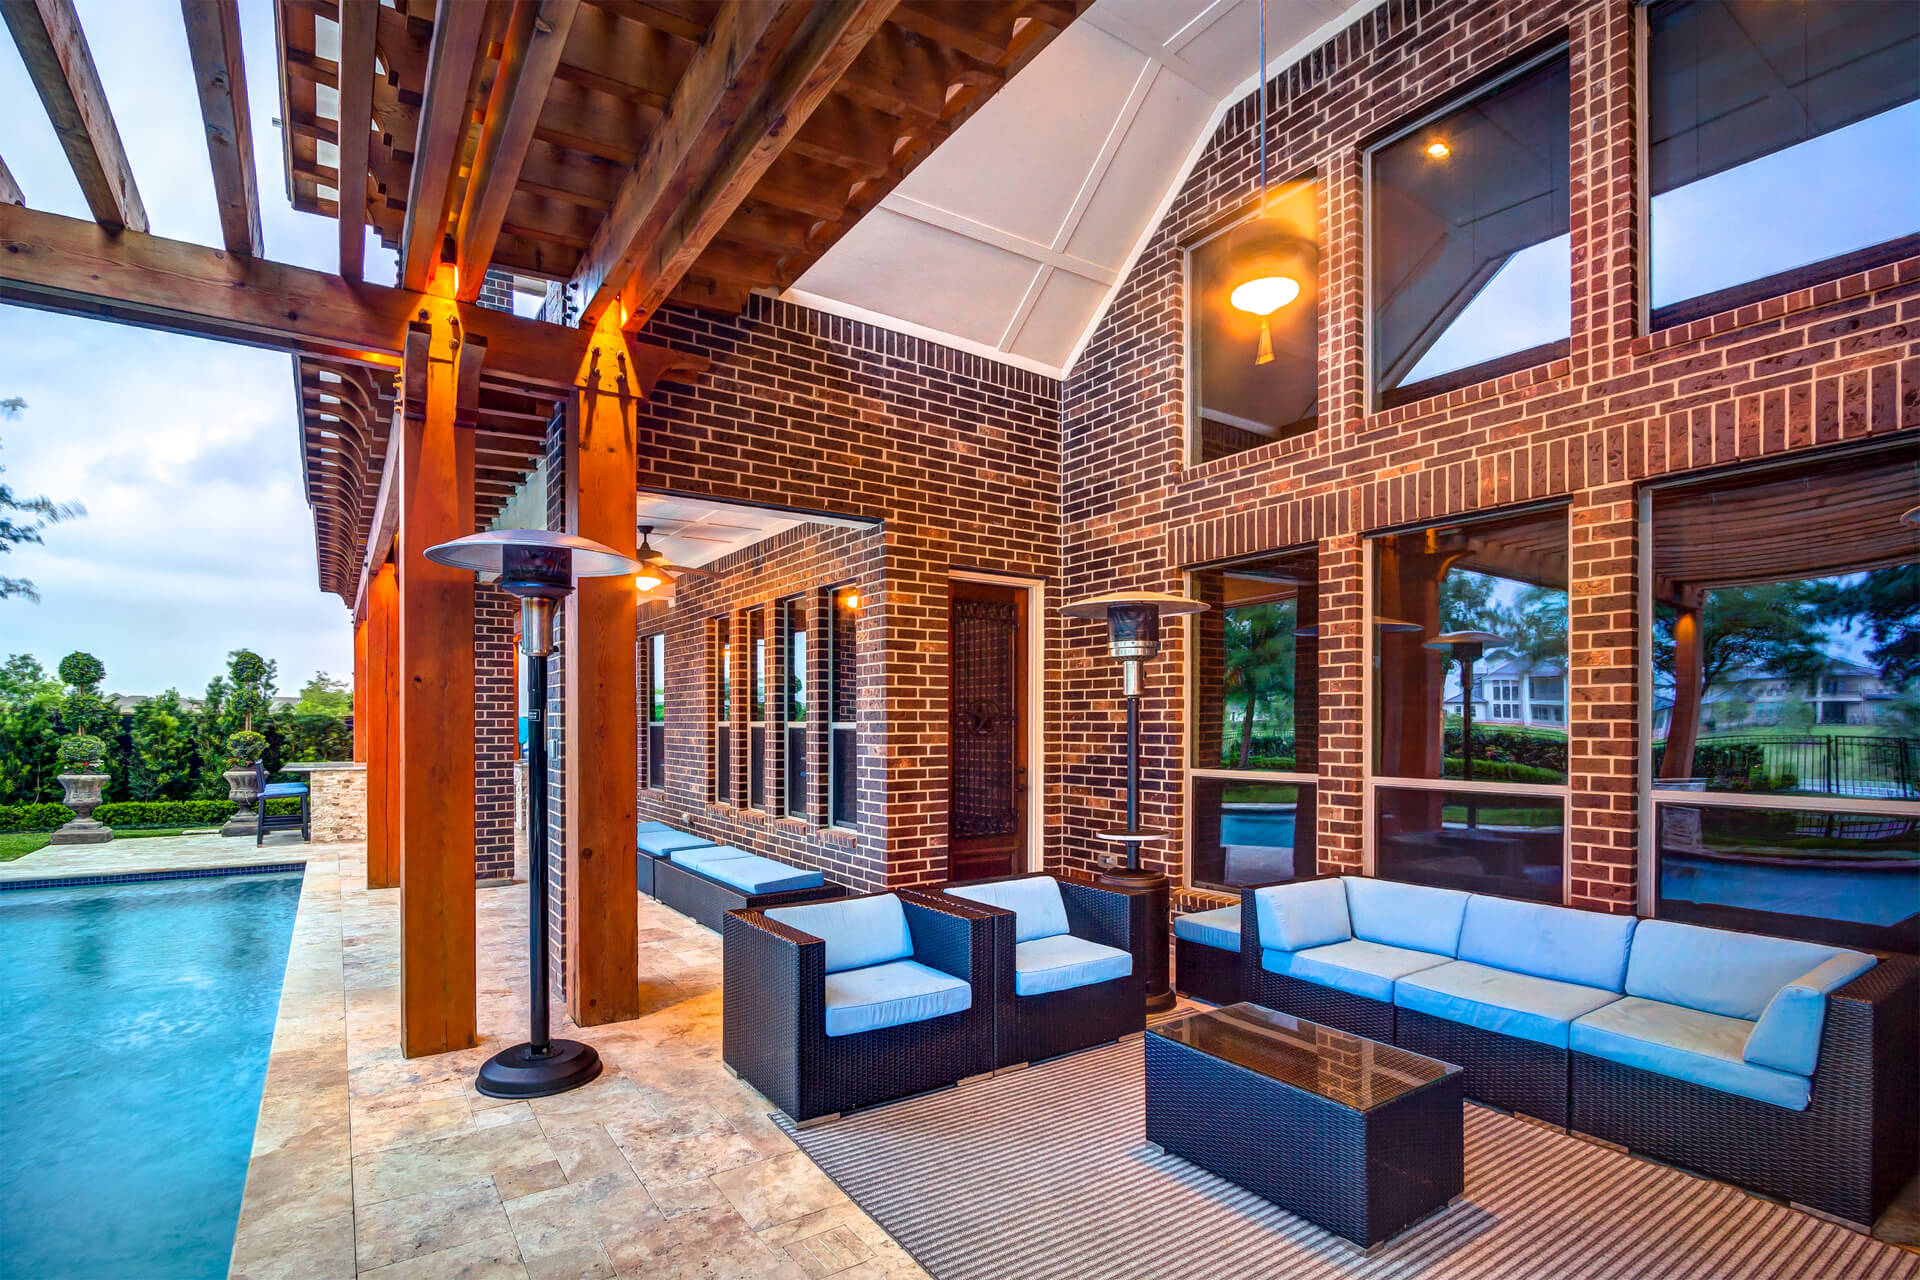 Outdoor Living Space with Cedar Pergola by Creekstone Outdoor Living in Spring, Texas